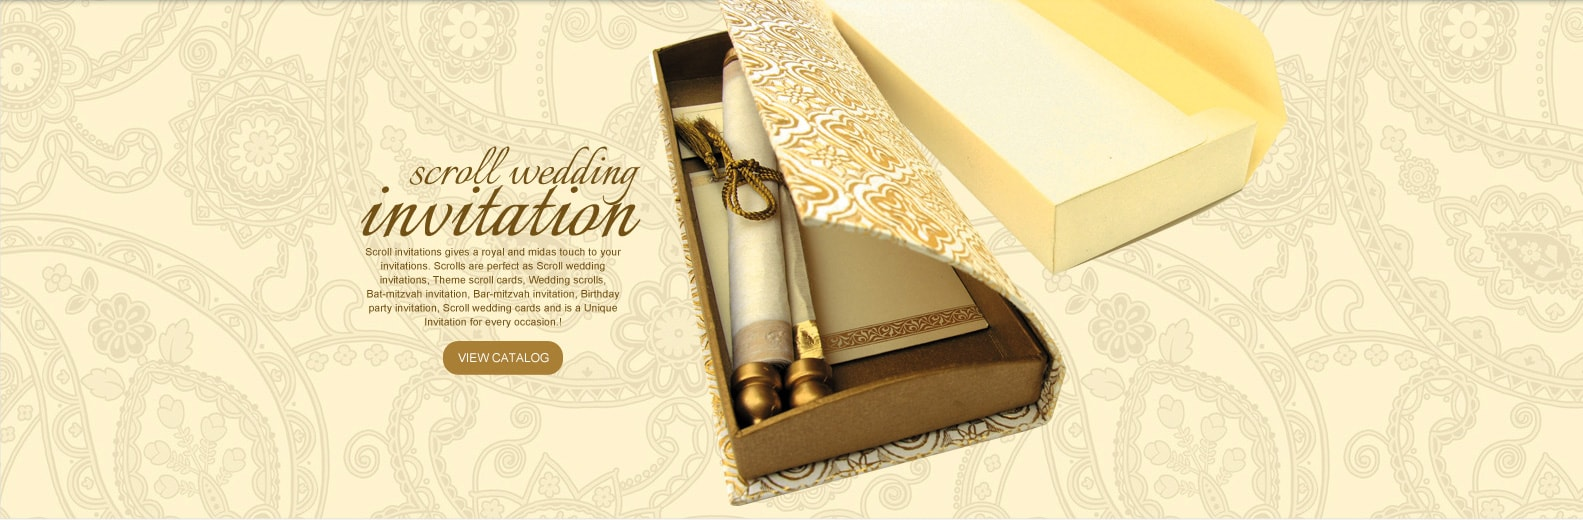 Scroll invitations bat bar mitzvah invitations wedding card on sale scroll invitation monicamarmolfo Image collections